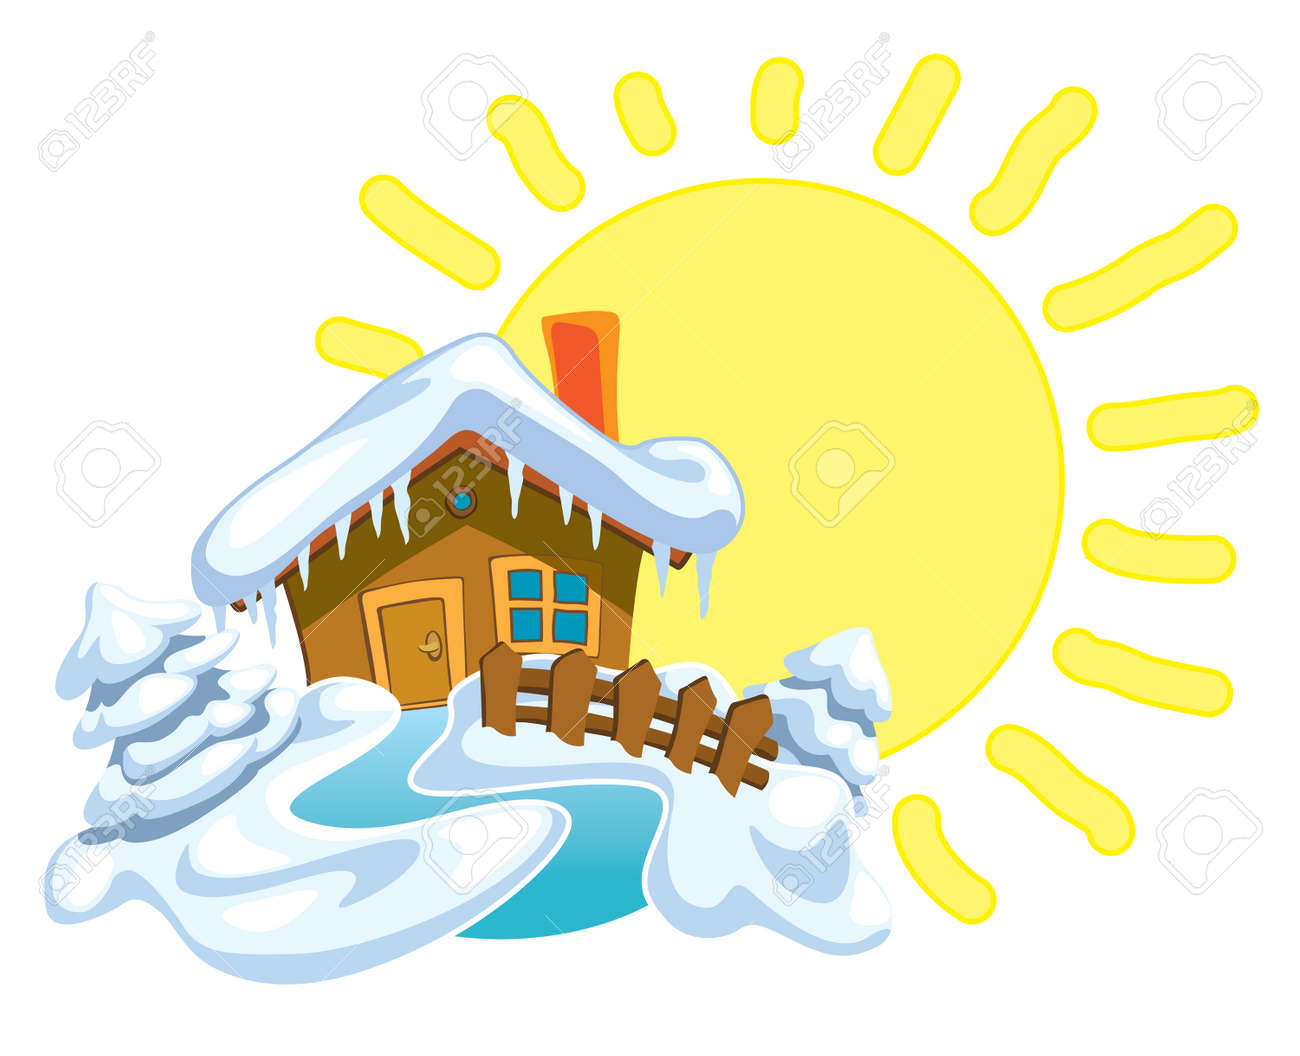 North Pole, Santa Claus house and winter background with shining sun Stock Vector - 7697760